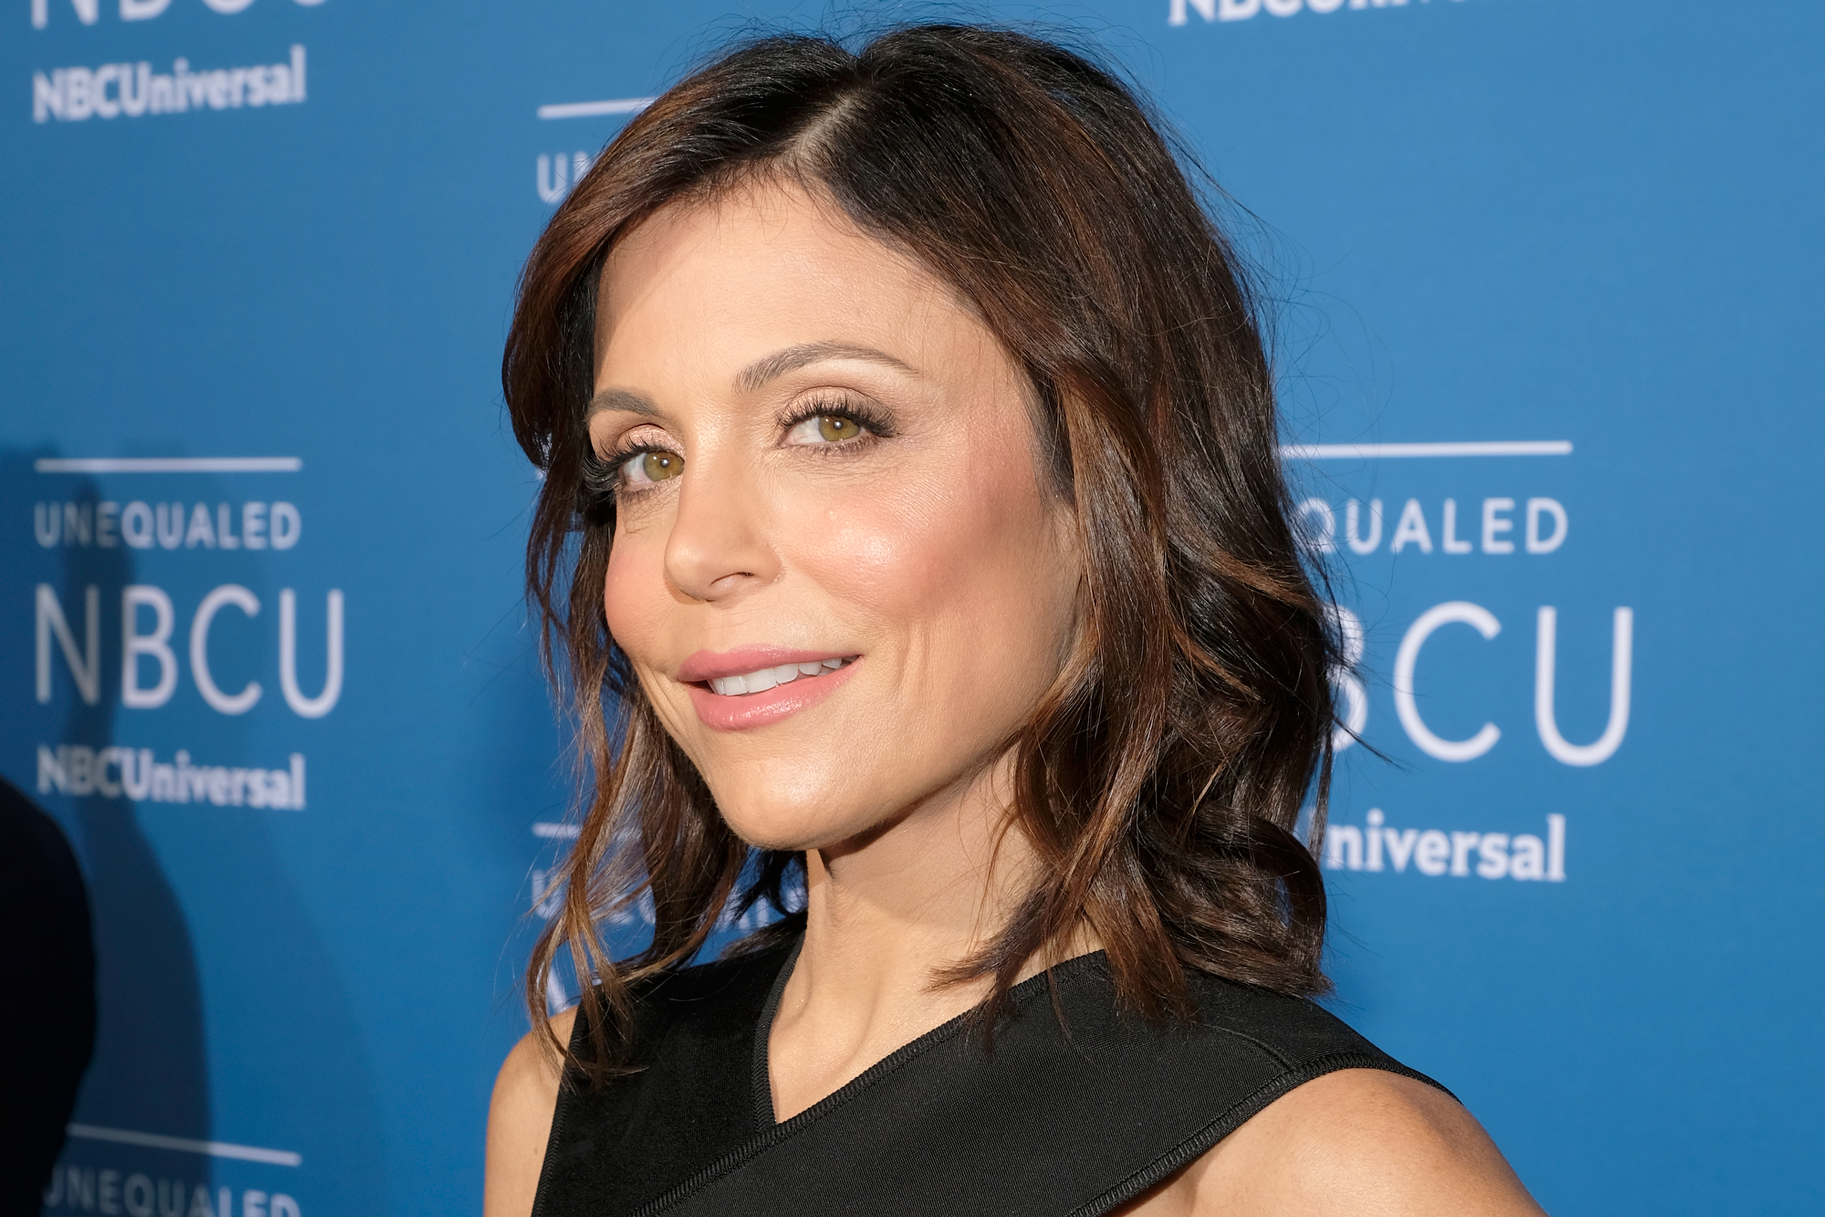 Bethenny Frankel reveals her new boyfriend Paul Bernon 'saved my life'